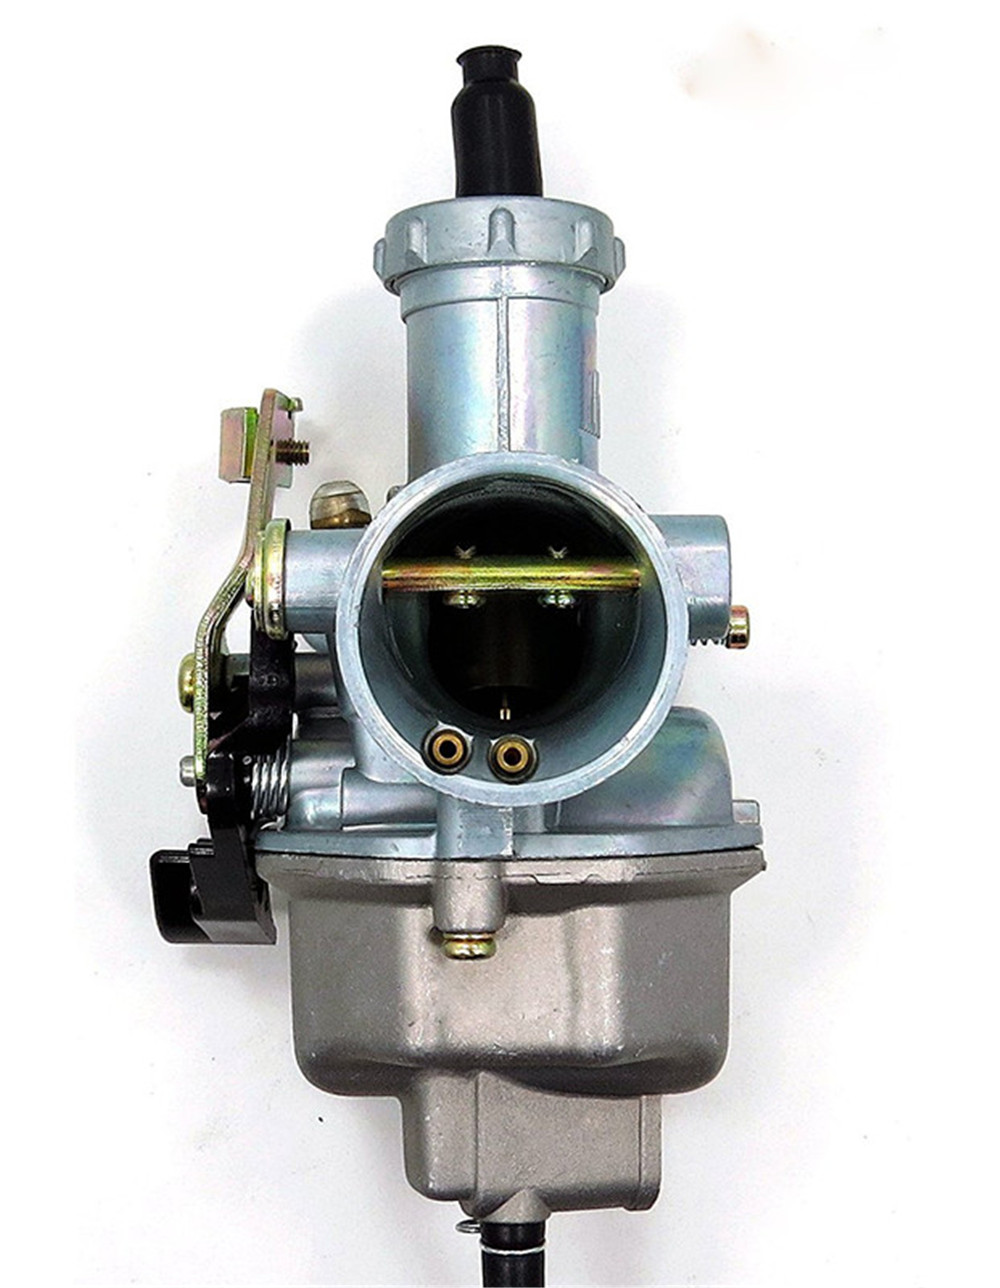 Motorcycle Carburetor 27mm Intake Mount Diameter For Bikes Motorbike Honda XR200 XR200R XL200